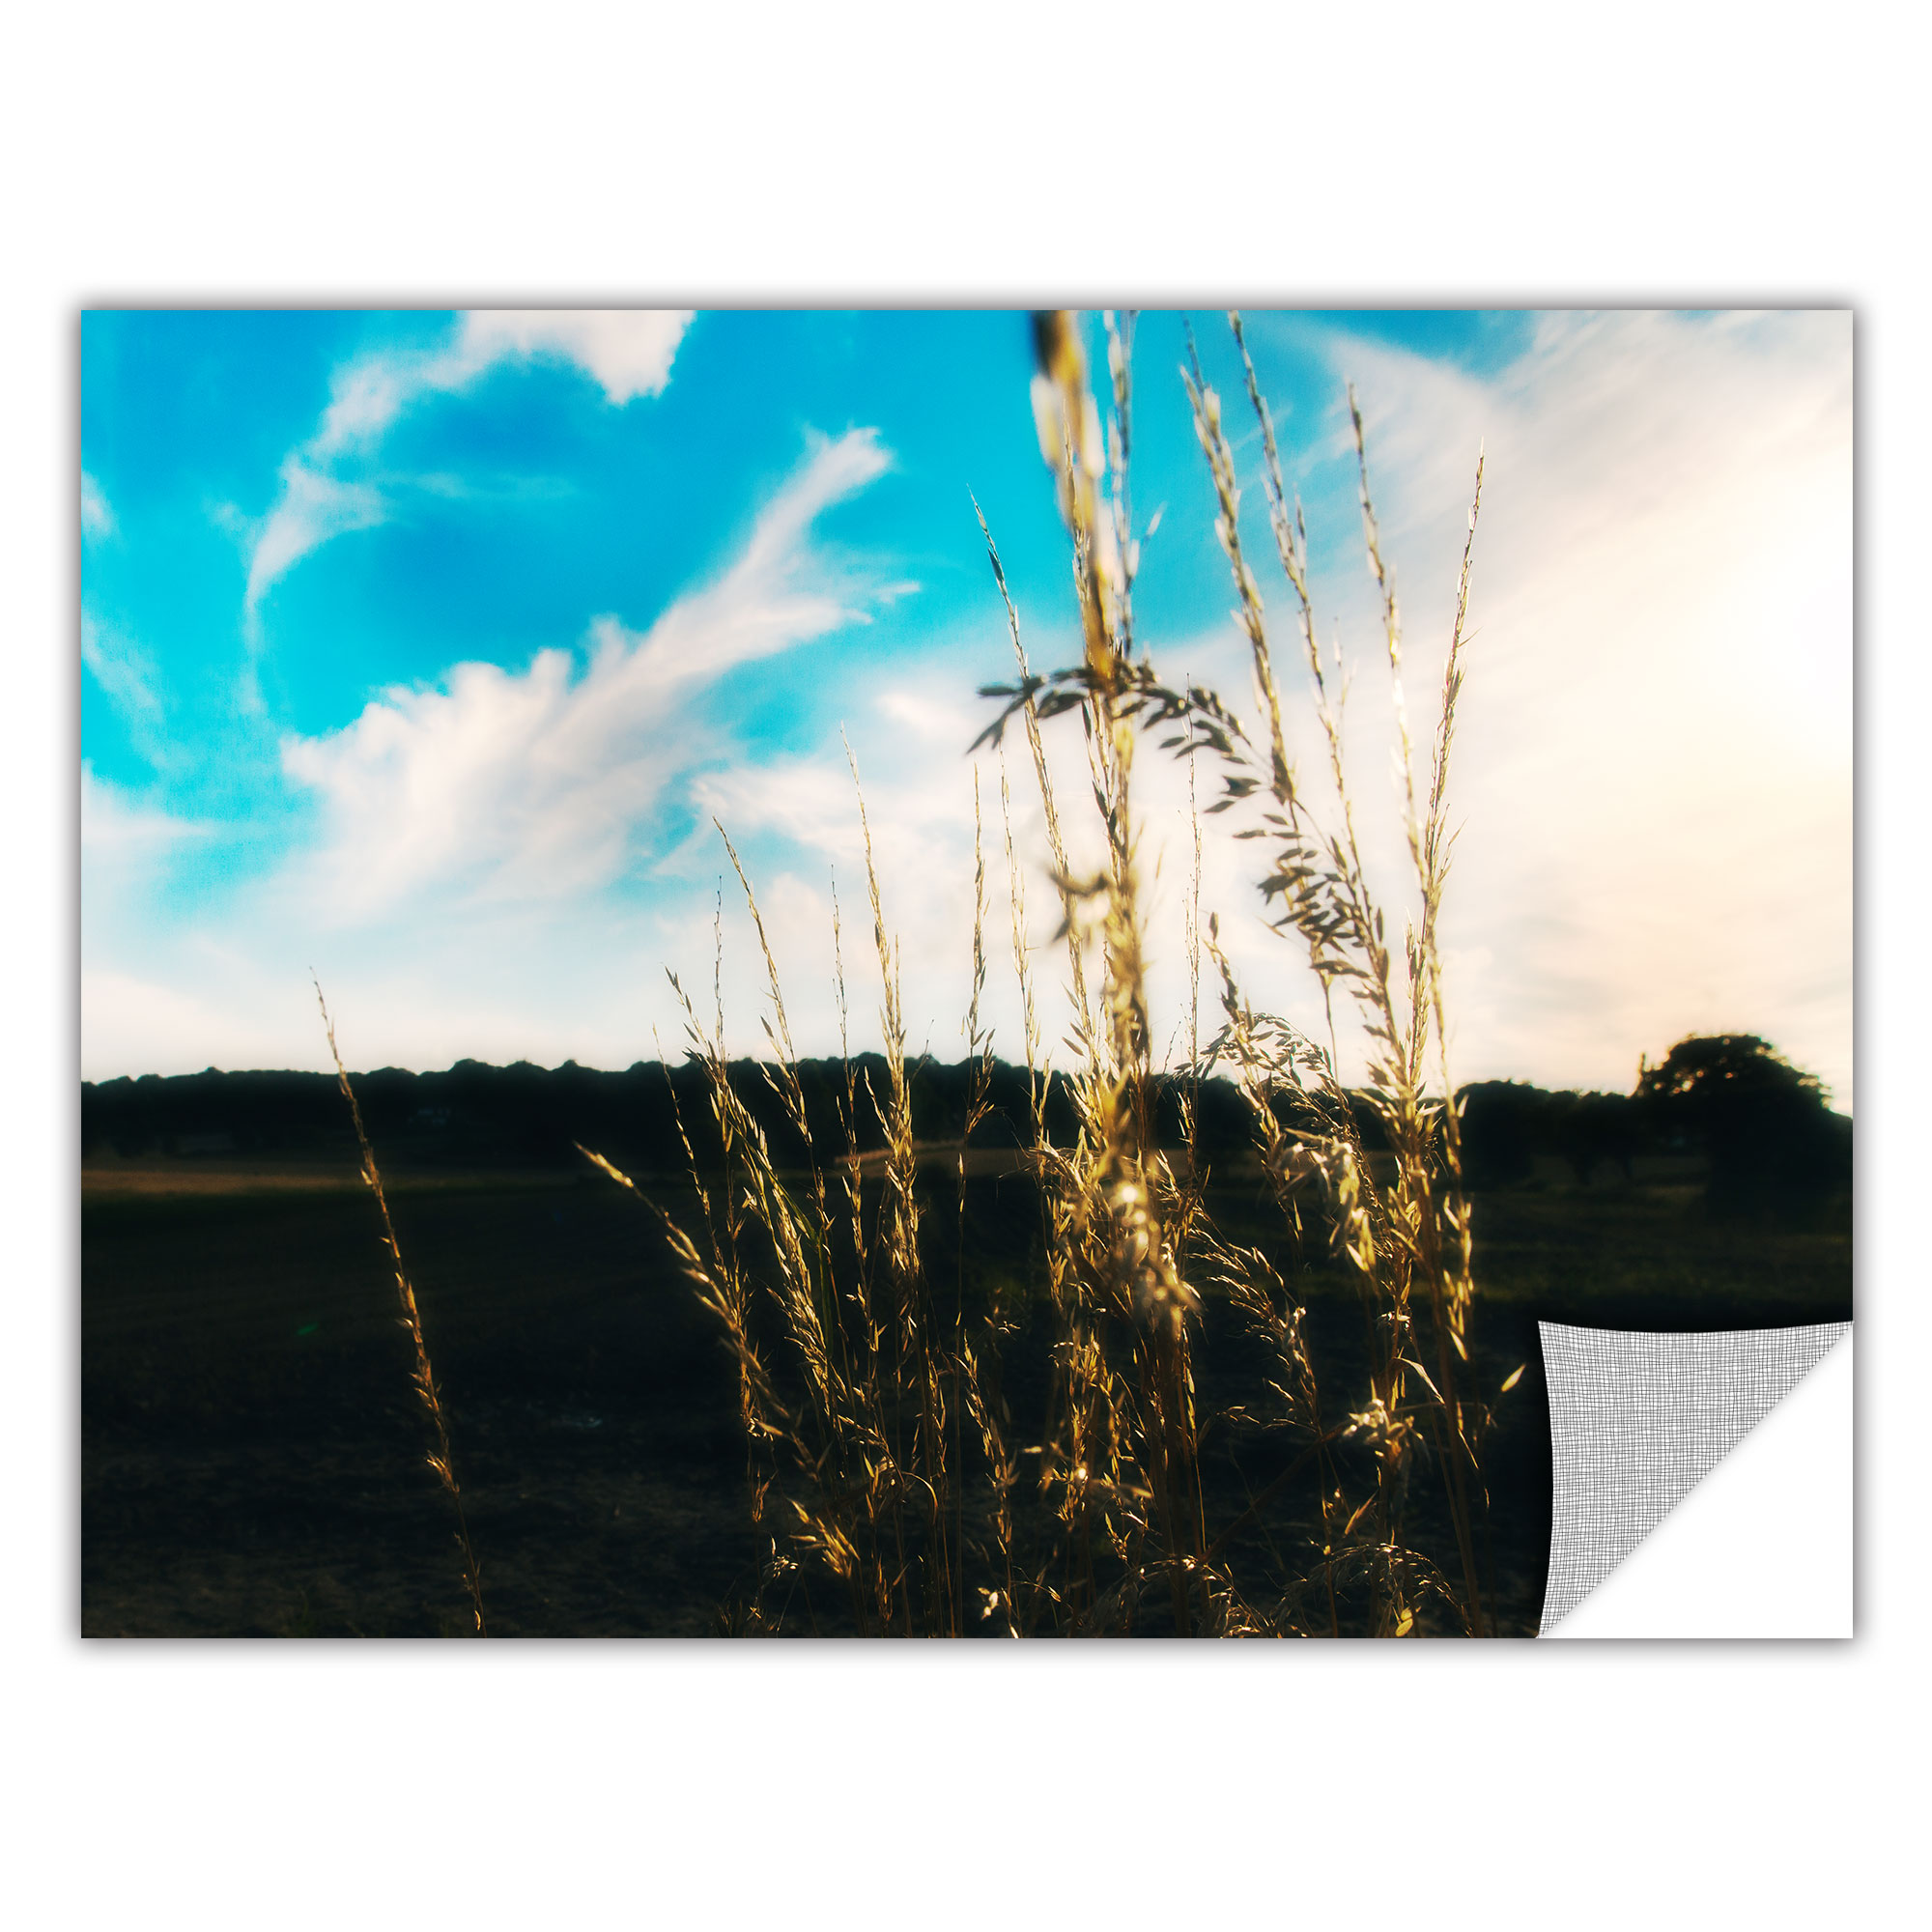 ArtWall Field by Revolver Ocelot Photographic Print